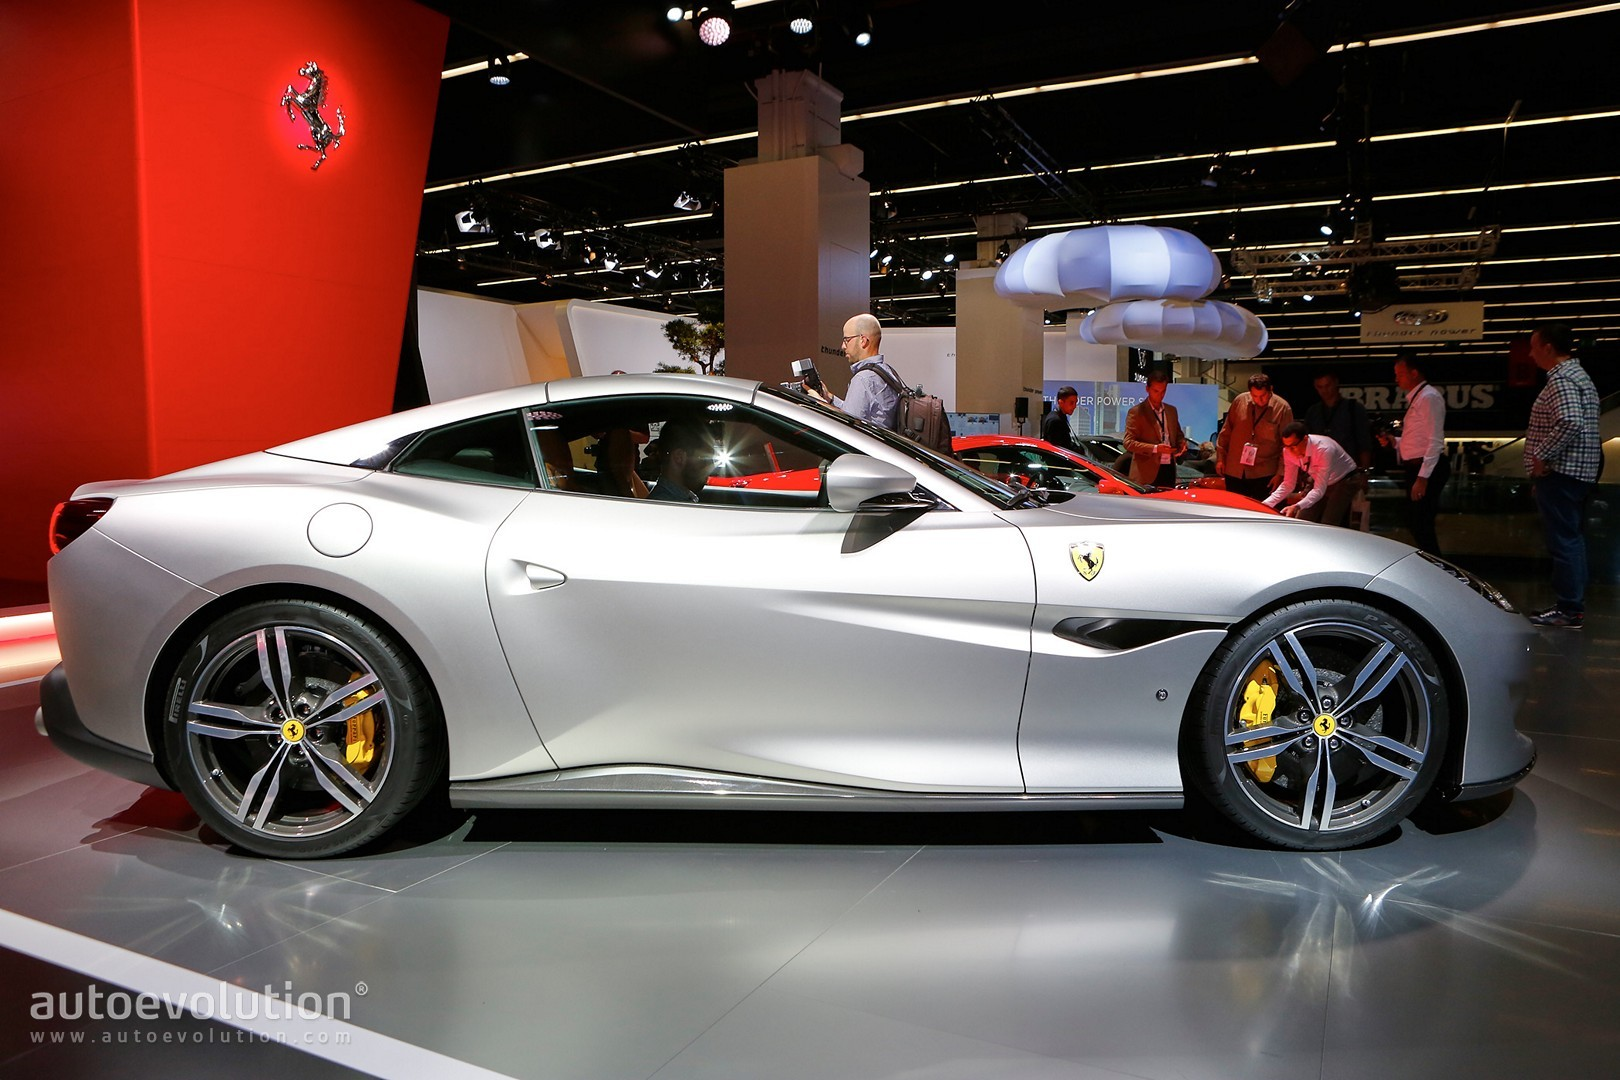 Ferrari On Course To Ramp Up Production Output To 9,000